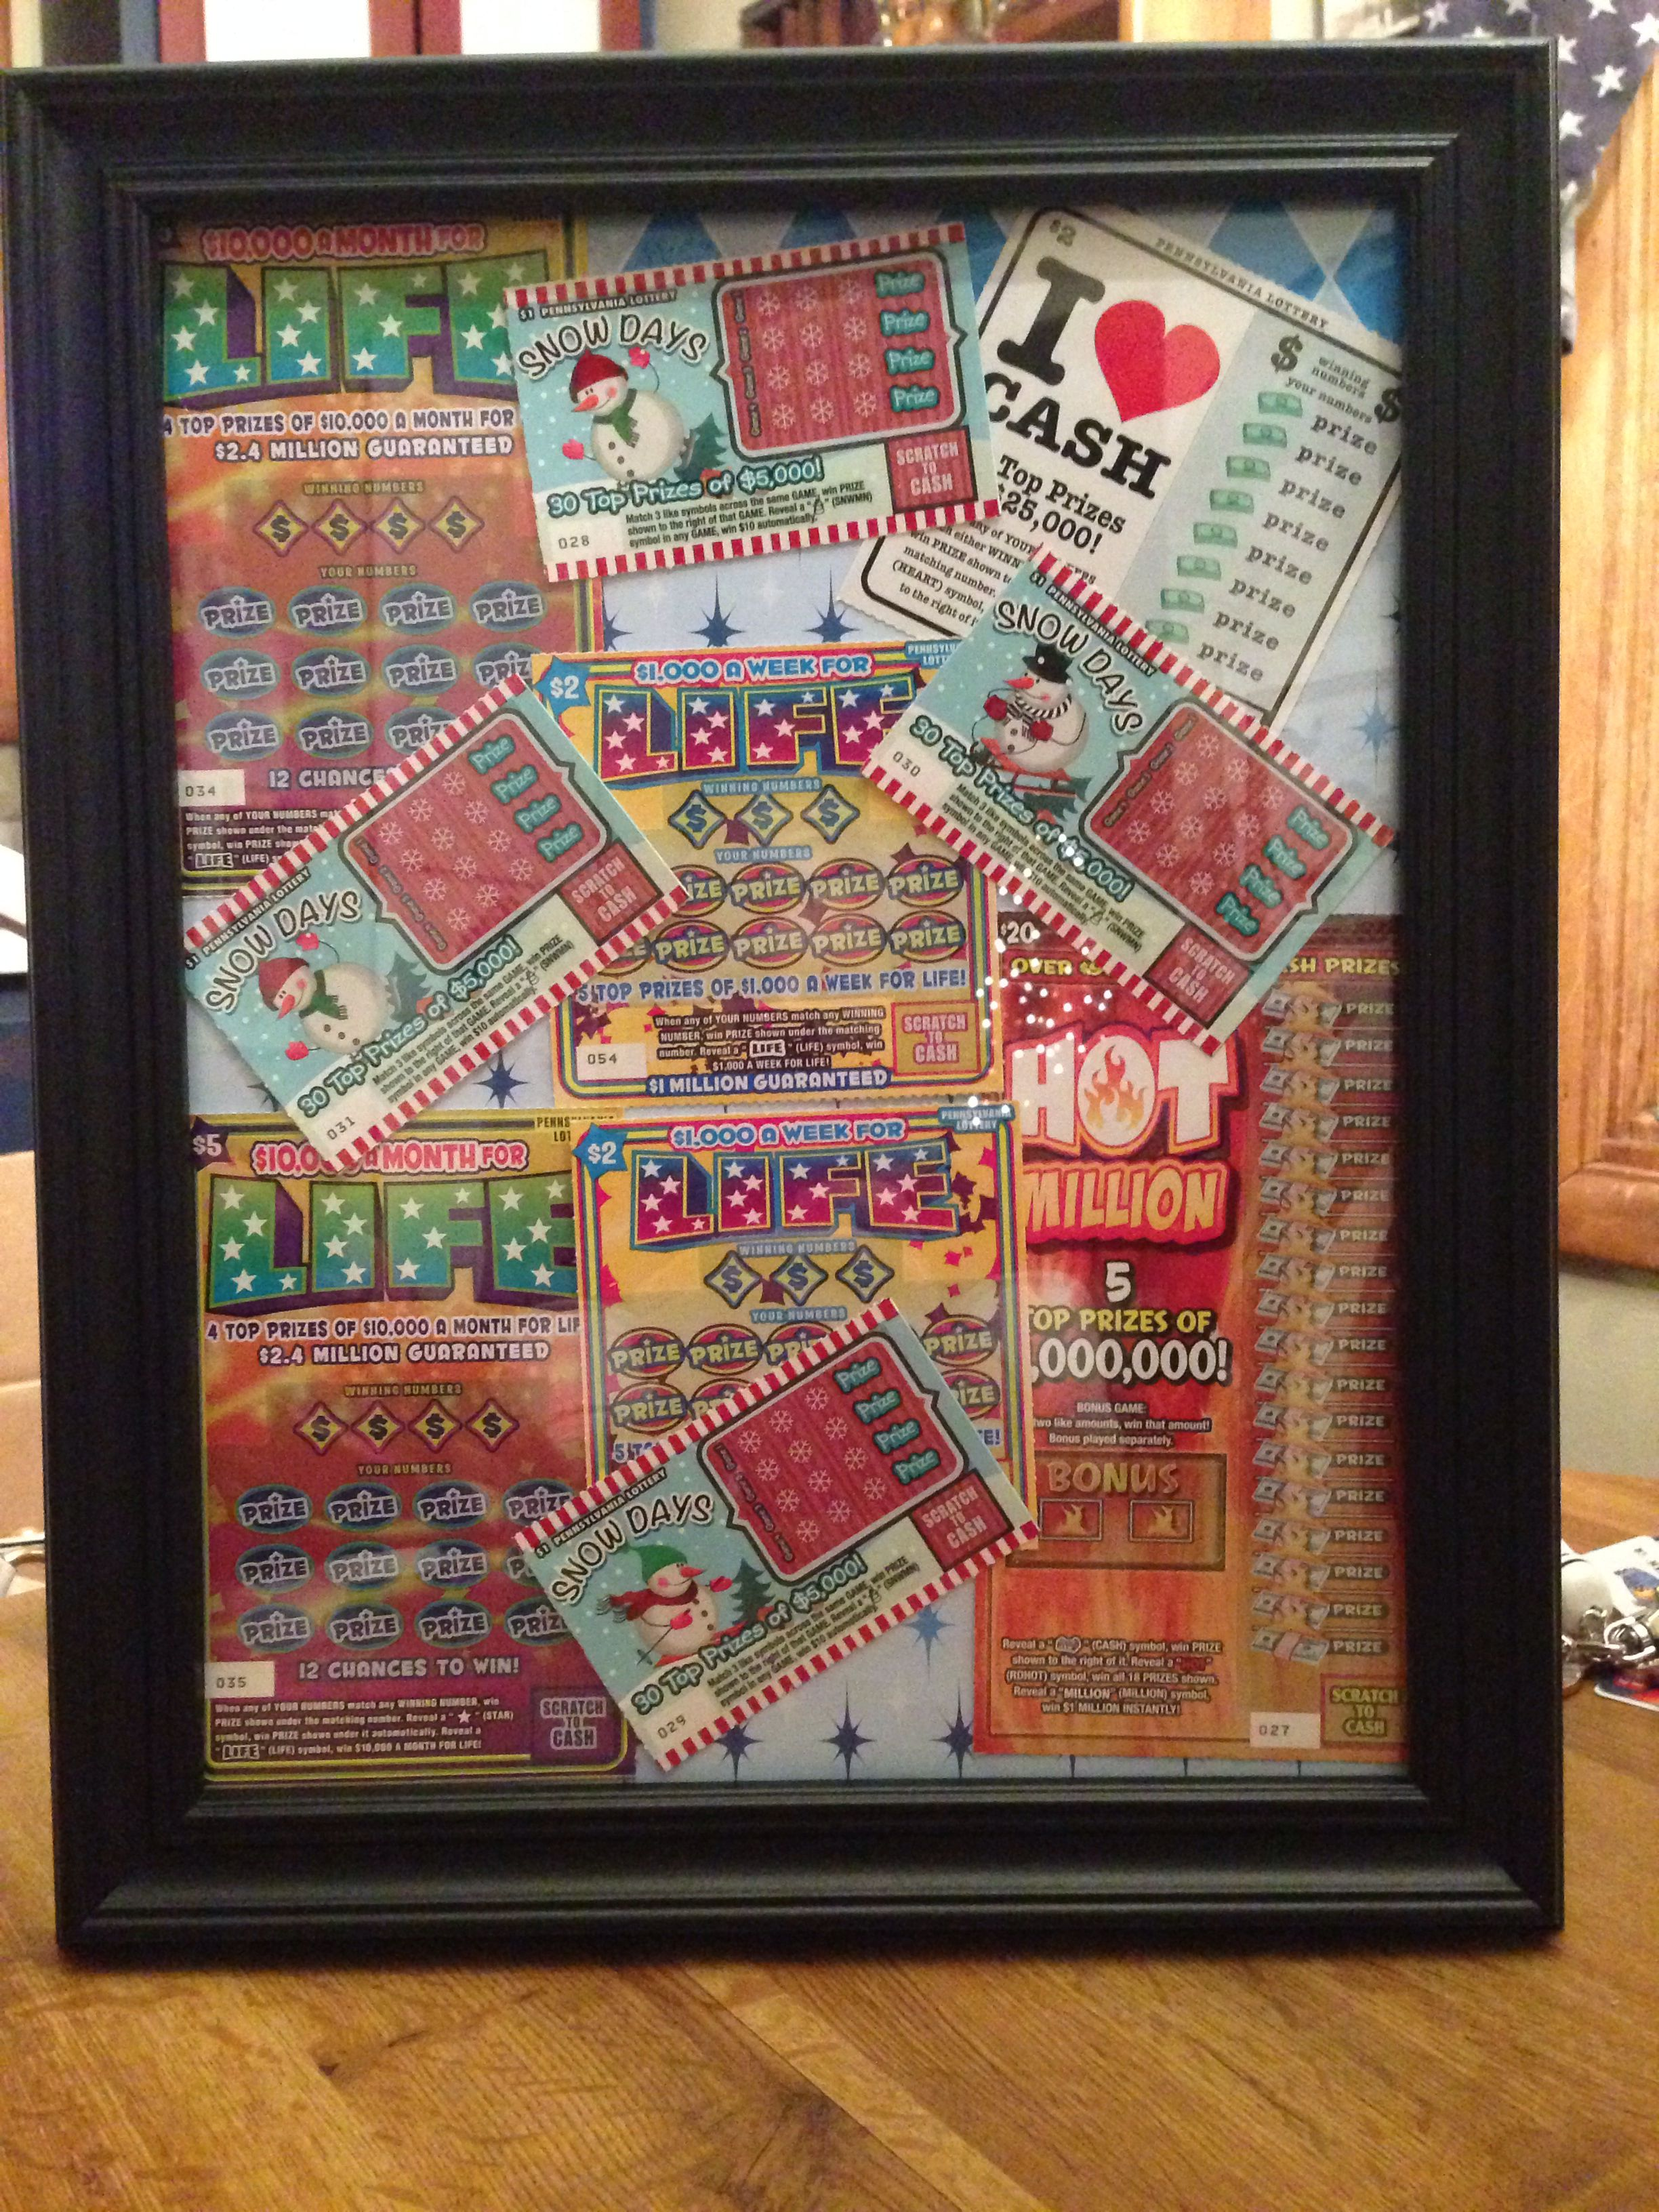 8 x 10 picture frame filled with Lotto Tickets! I did this instead